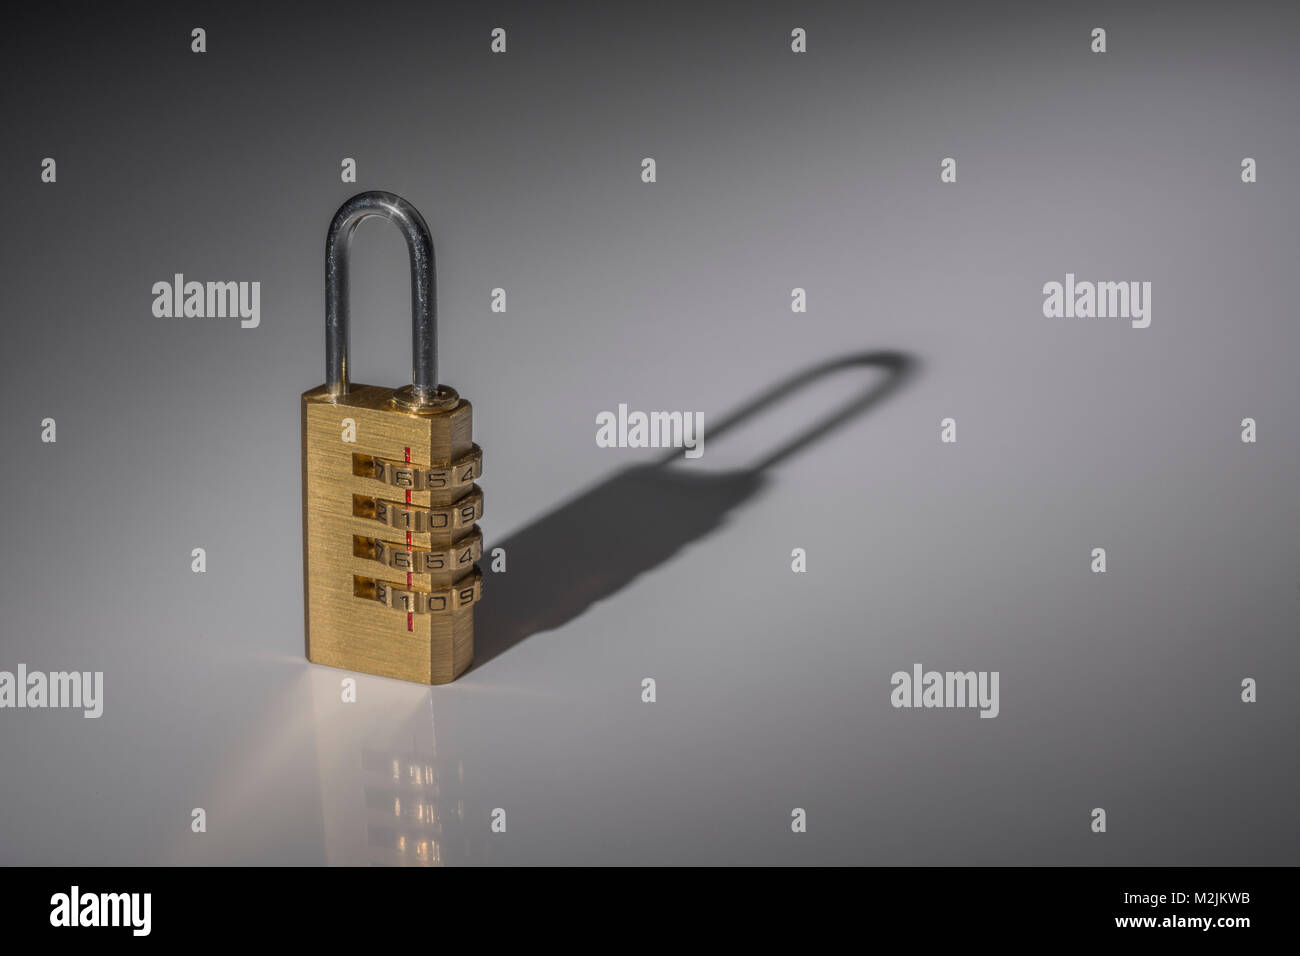 Small combination padlock on plain background - as visual metaphor for concept of data security, email security, - Stock Image